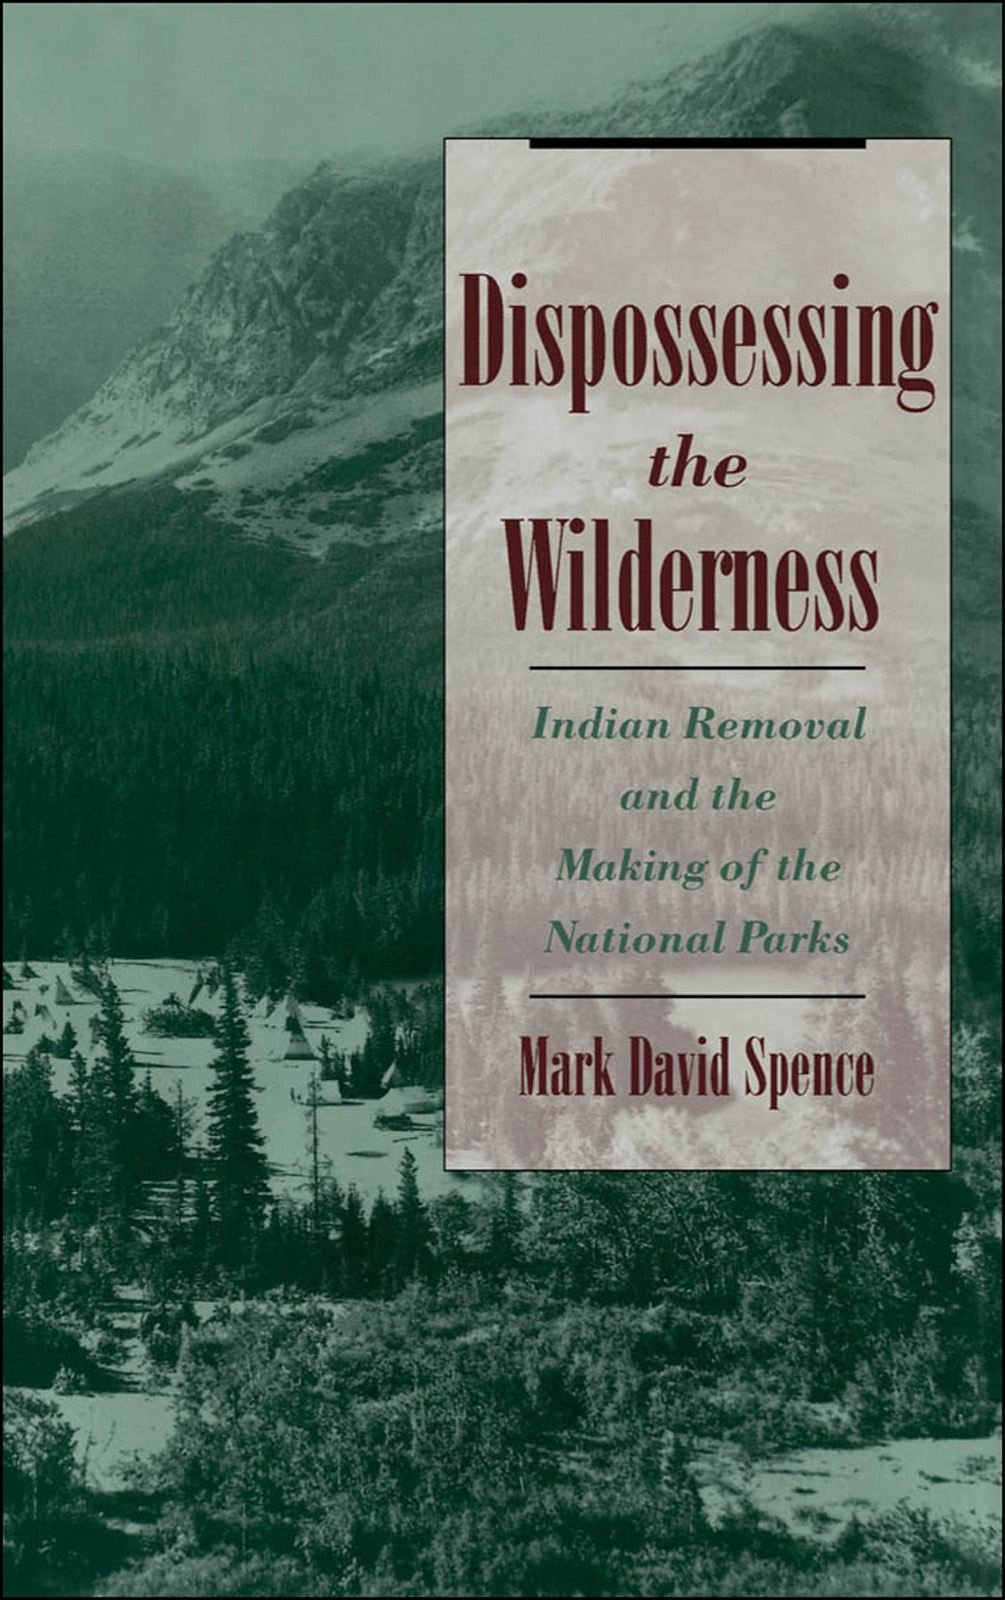 Dispossessing the Wilderness : Indian Removal and the Making of the National Parks